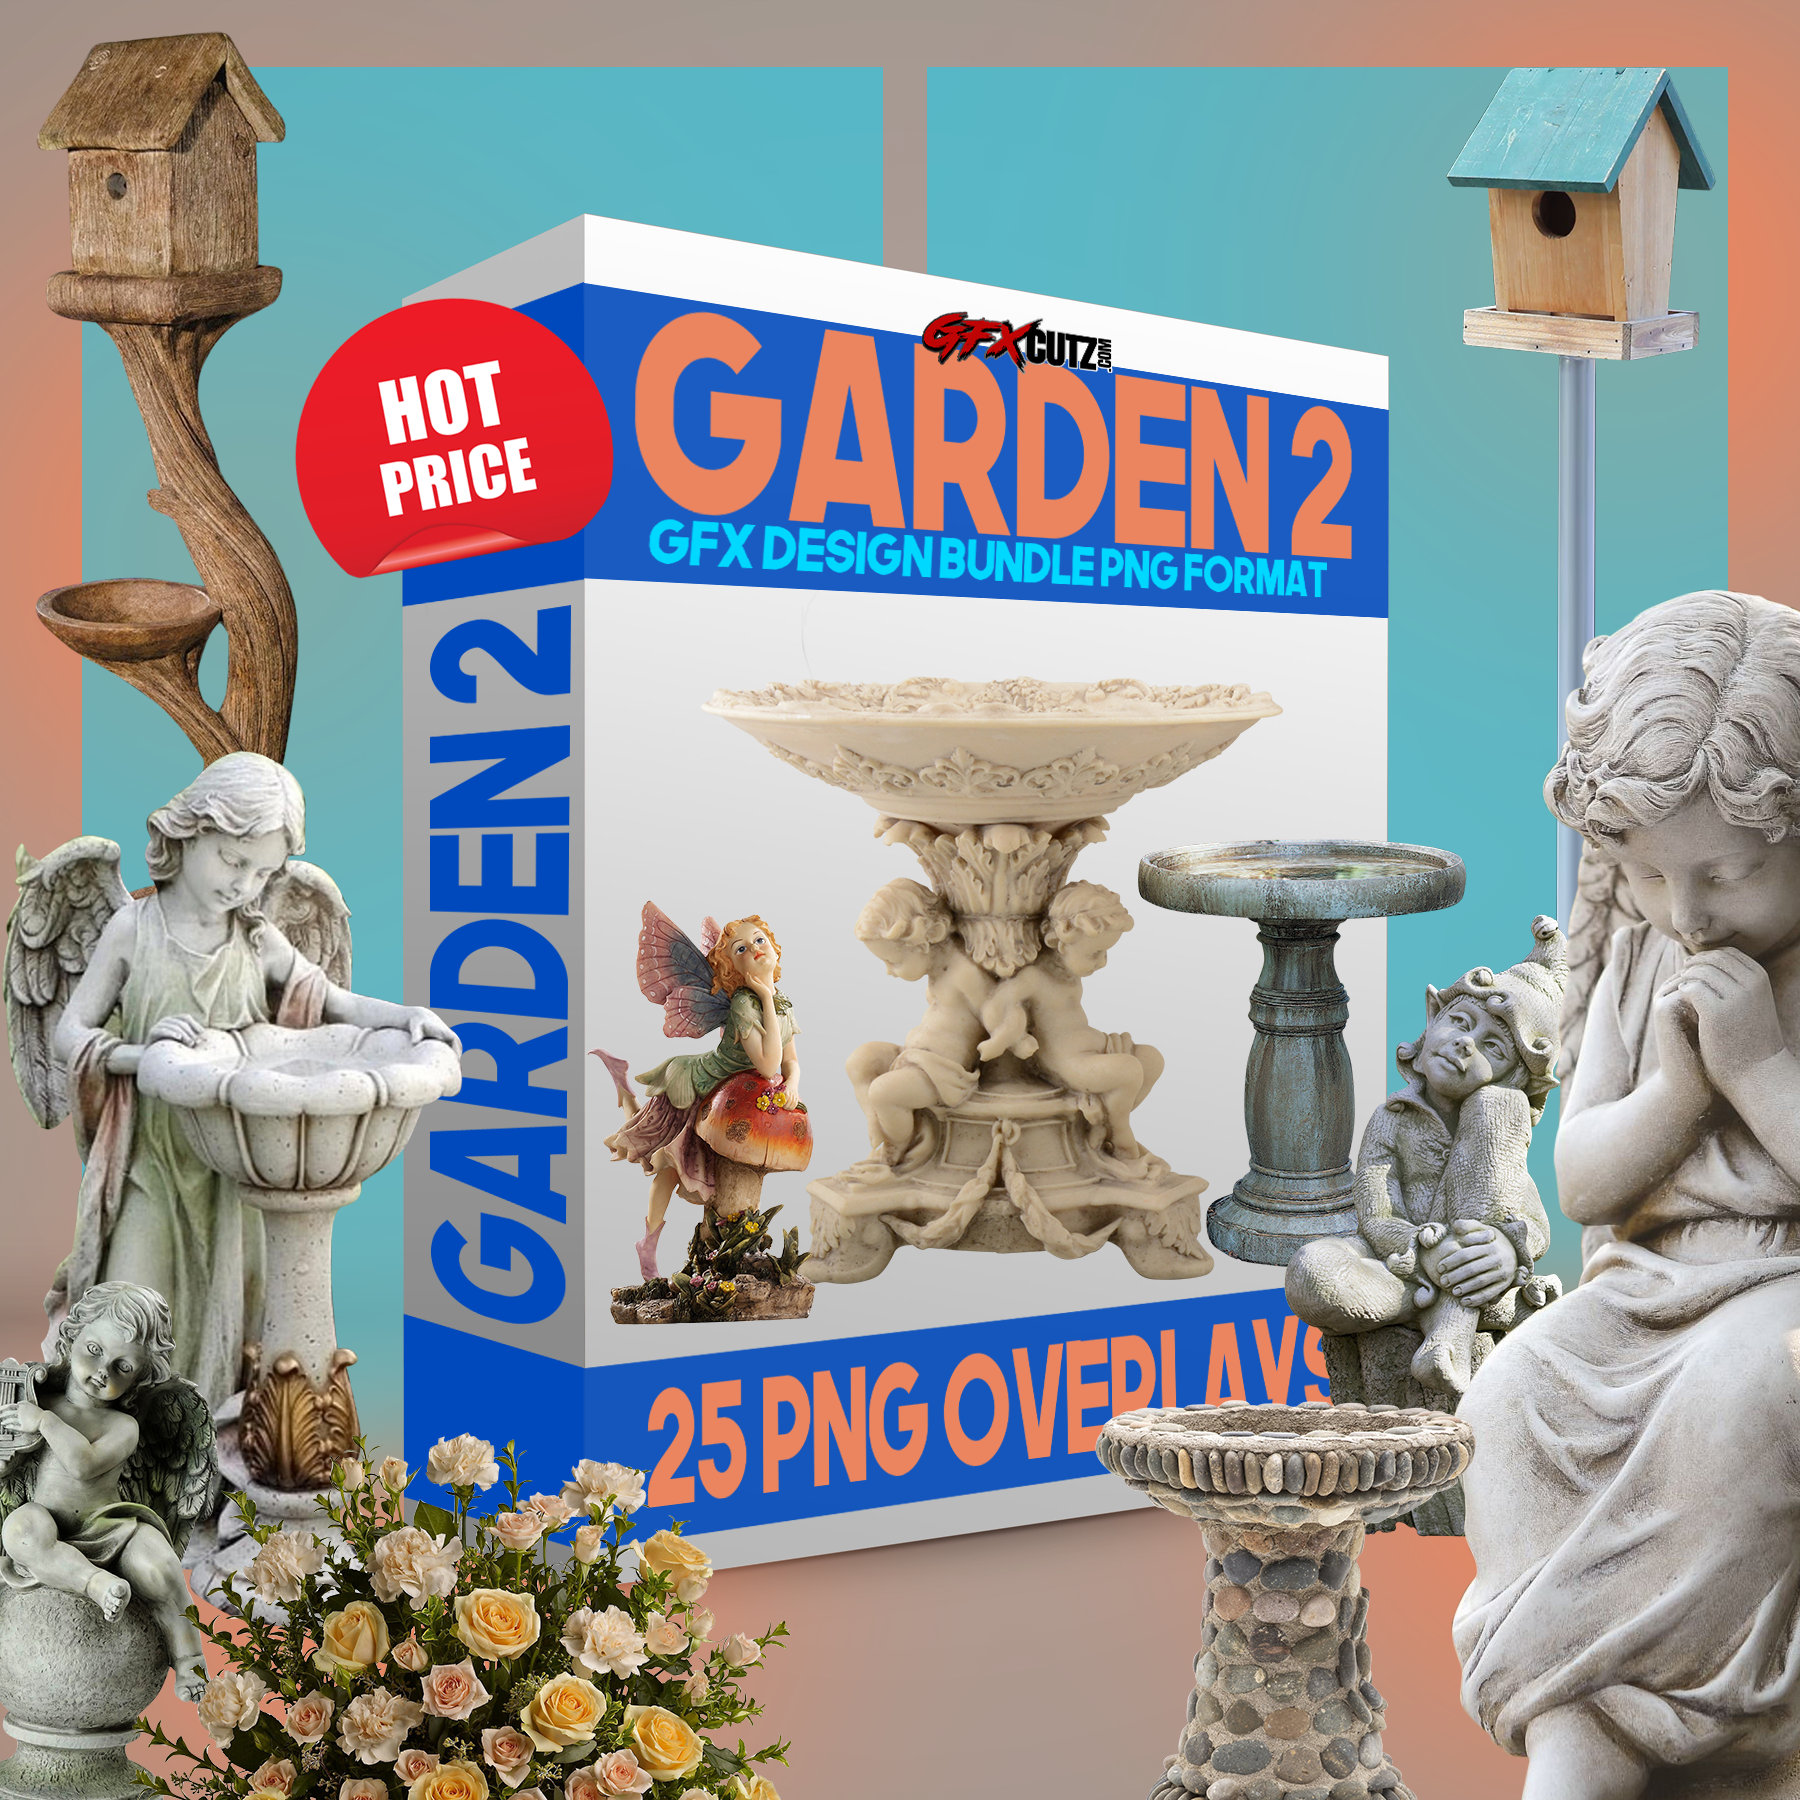 Garden V2 Photoshop Overlays, In PNG format great for